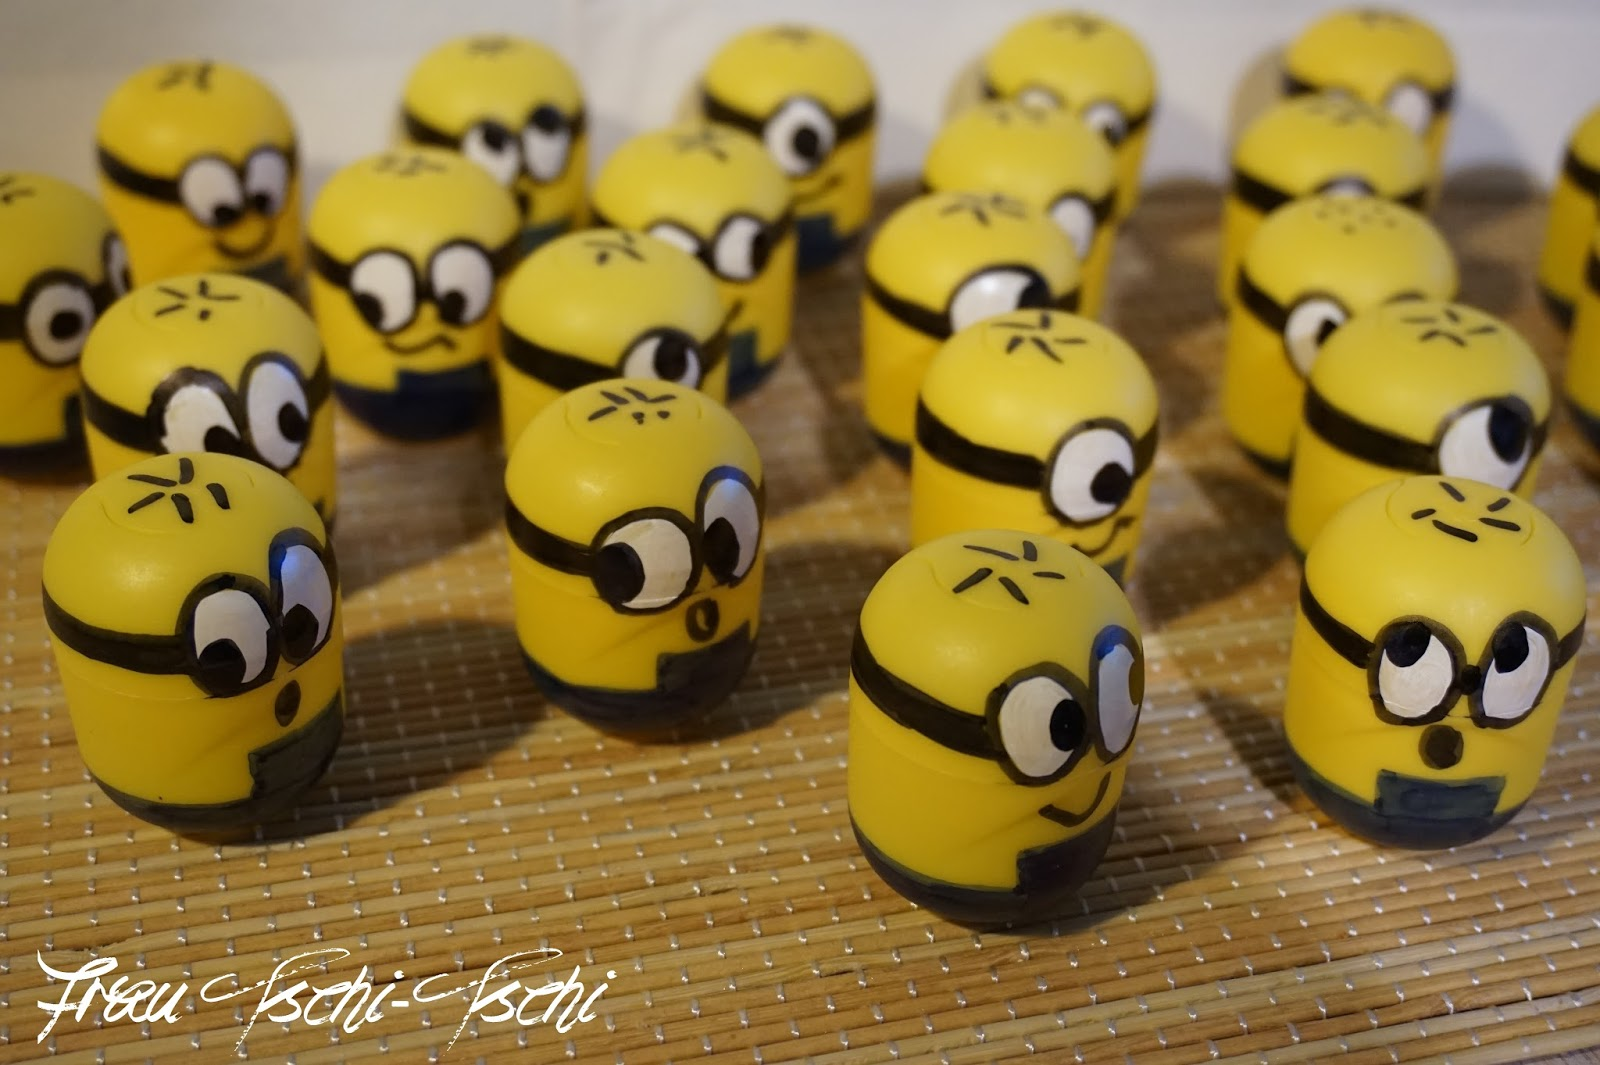 Originelle Adventskalender Selber Machen Frau Tschi Tschi Adventskalender Minion